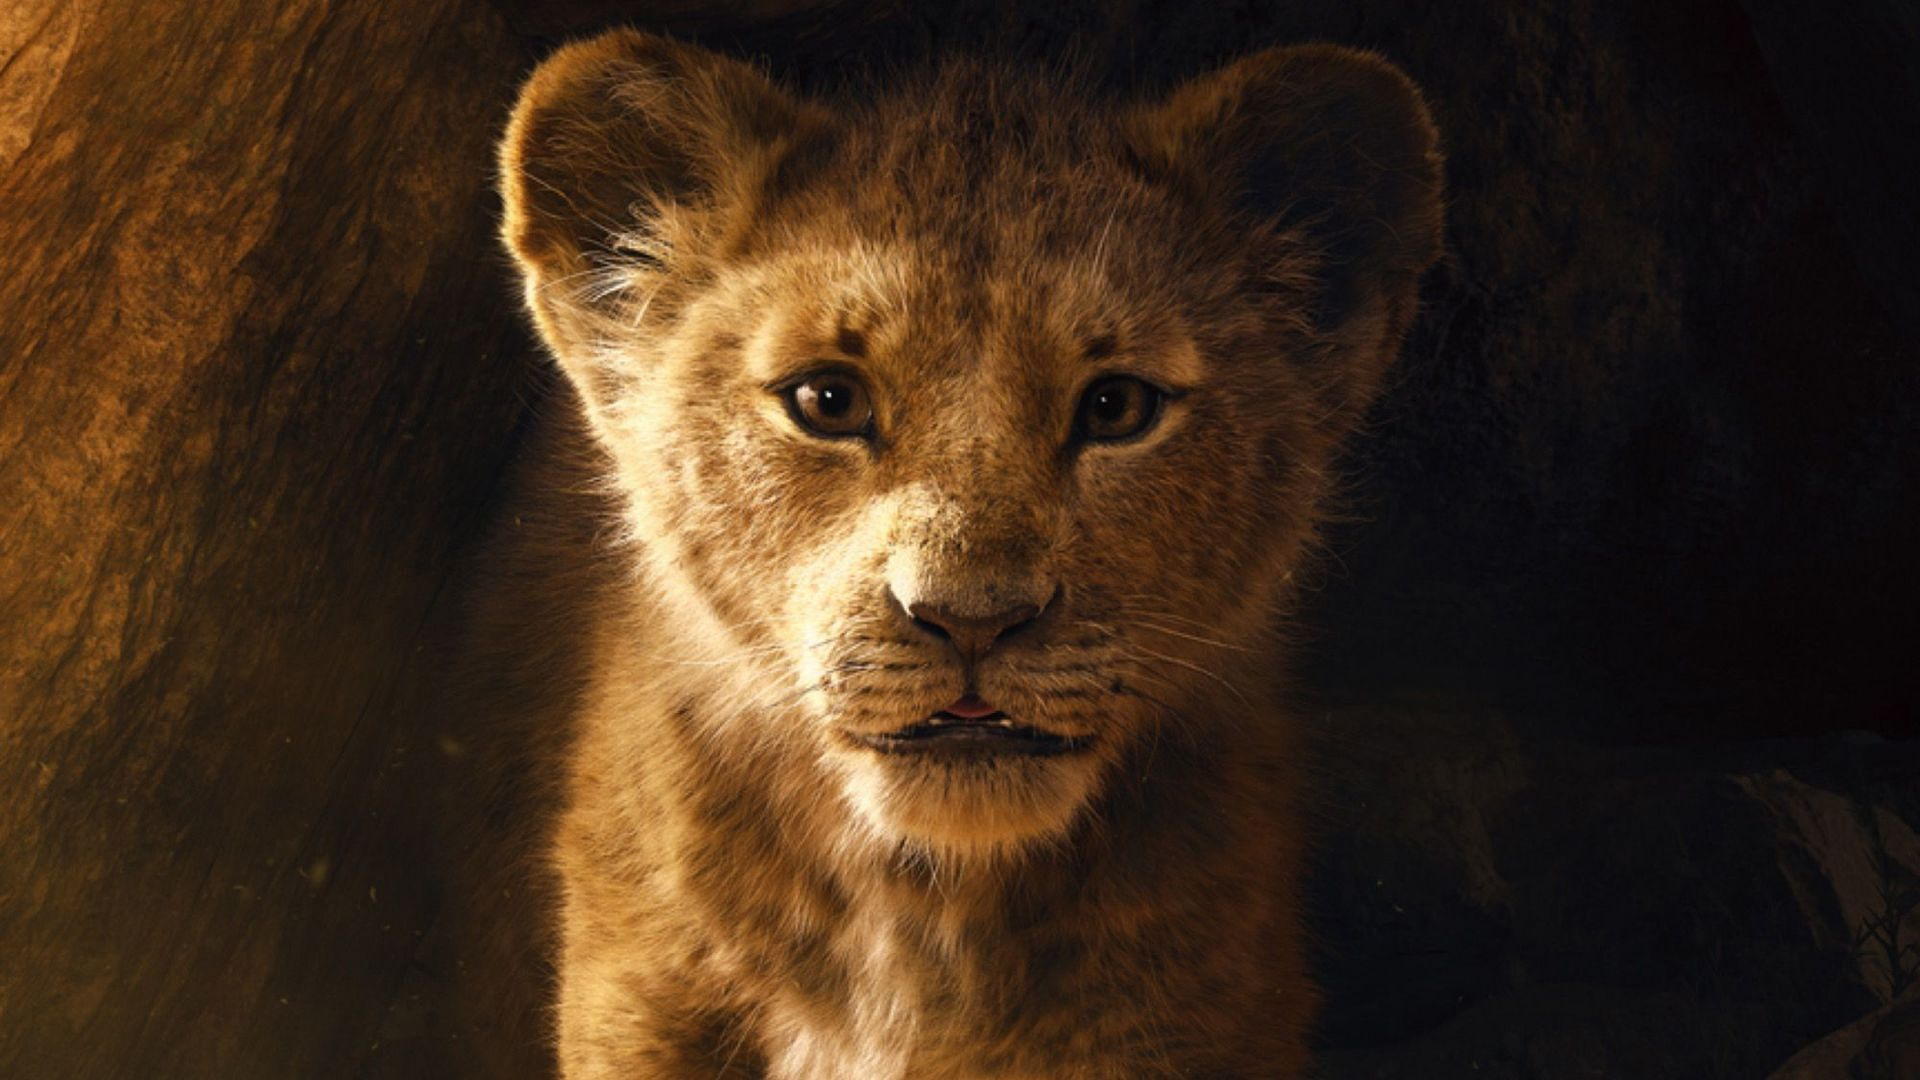 The Lion King, poster, HD (horizontal)